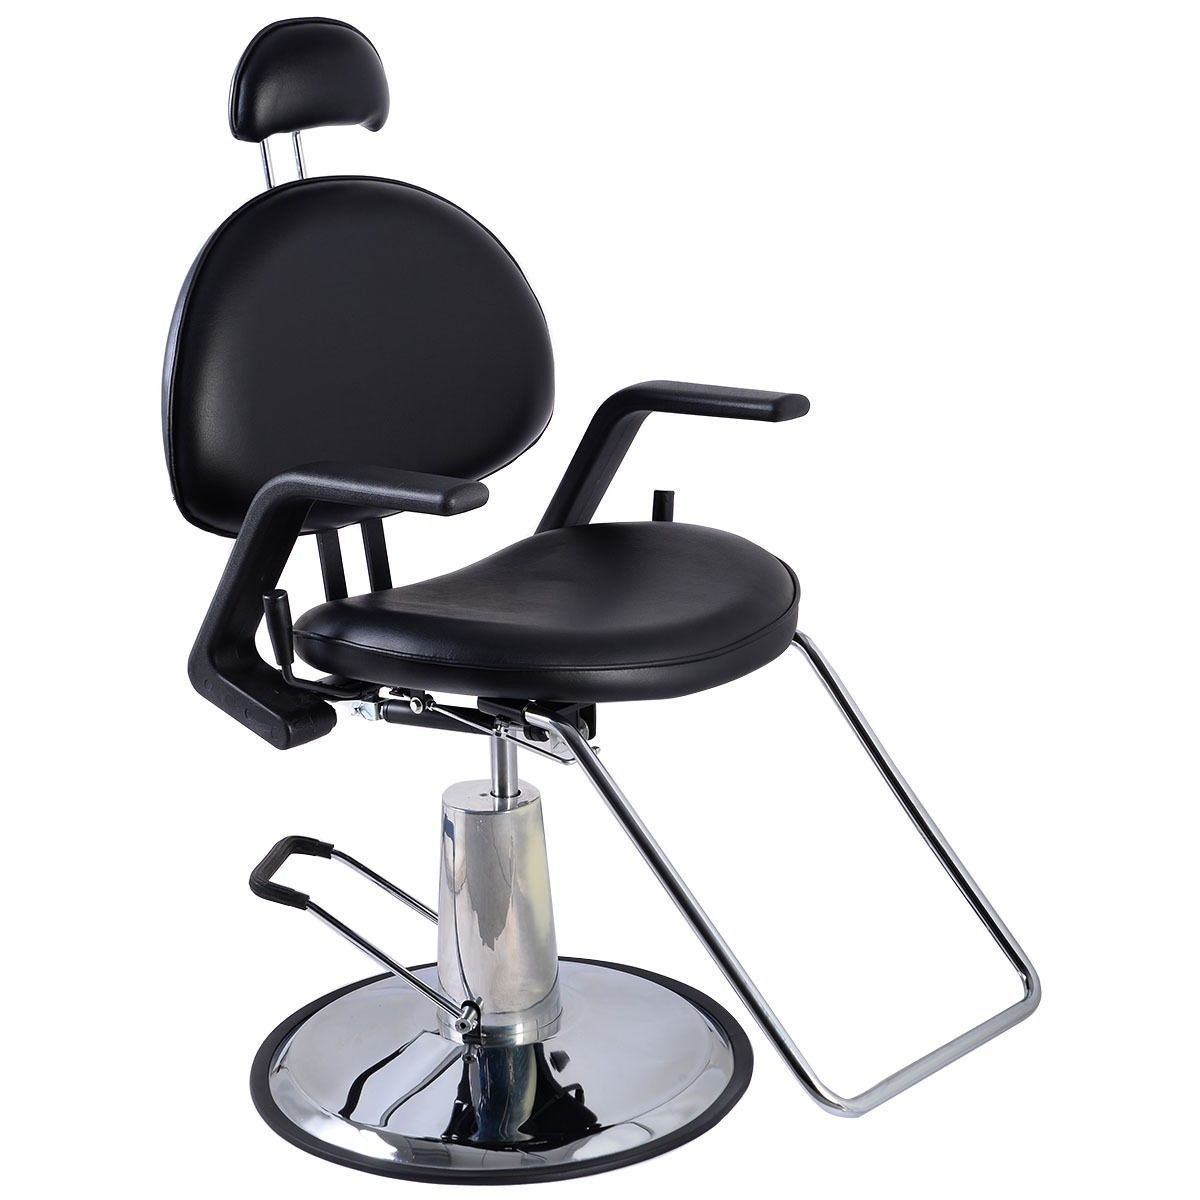 Top 10 Barber Chair Reviews - [What Is the Best in 2018?]